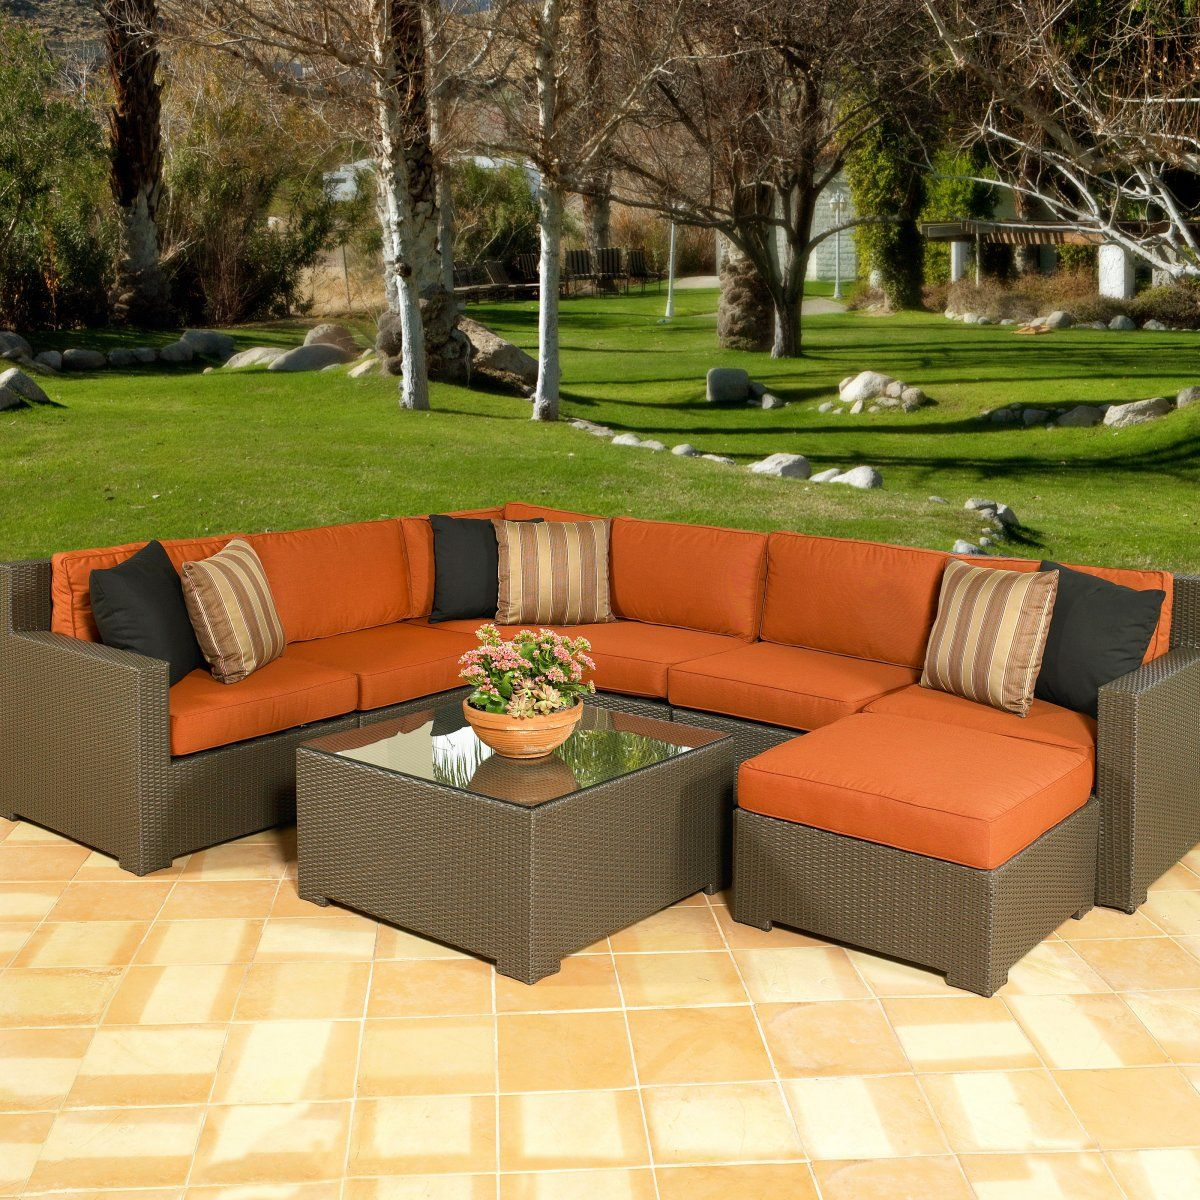 Exceptional Melrose All Weather Wicker Sectional Set   Seats Up To 7 · Porch  FurnitureFurniture SetsGarden ...